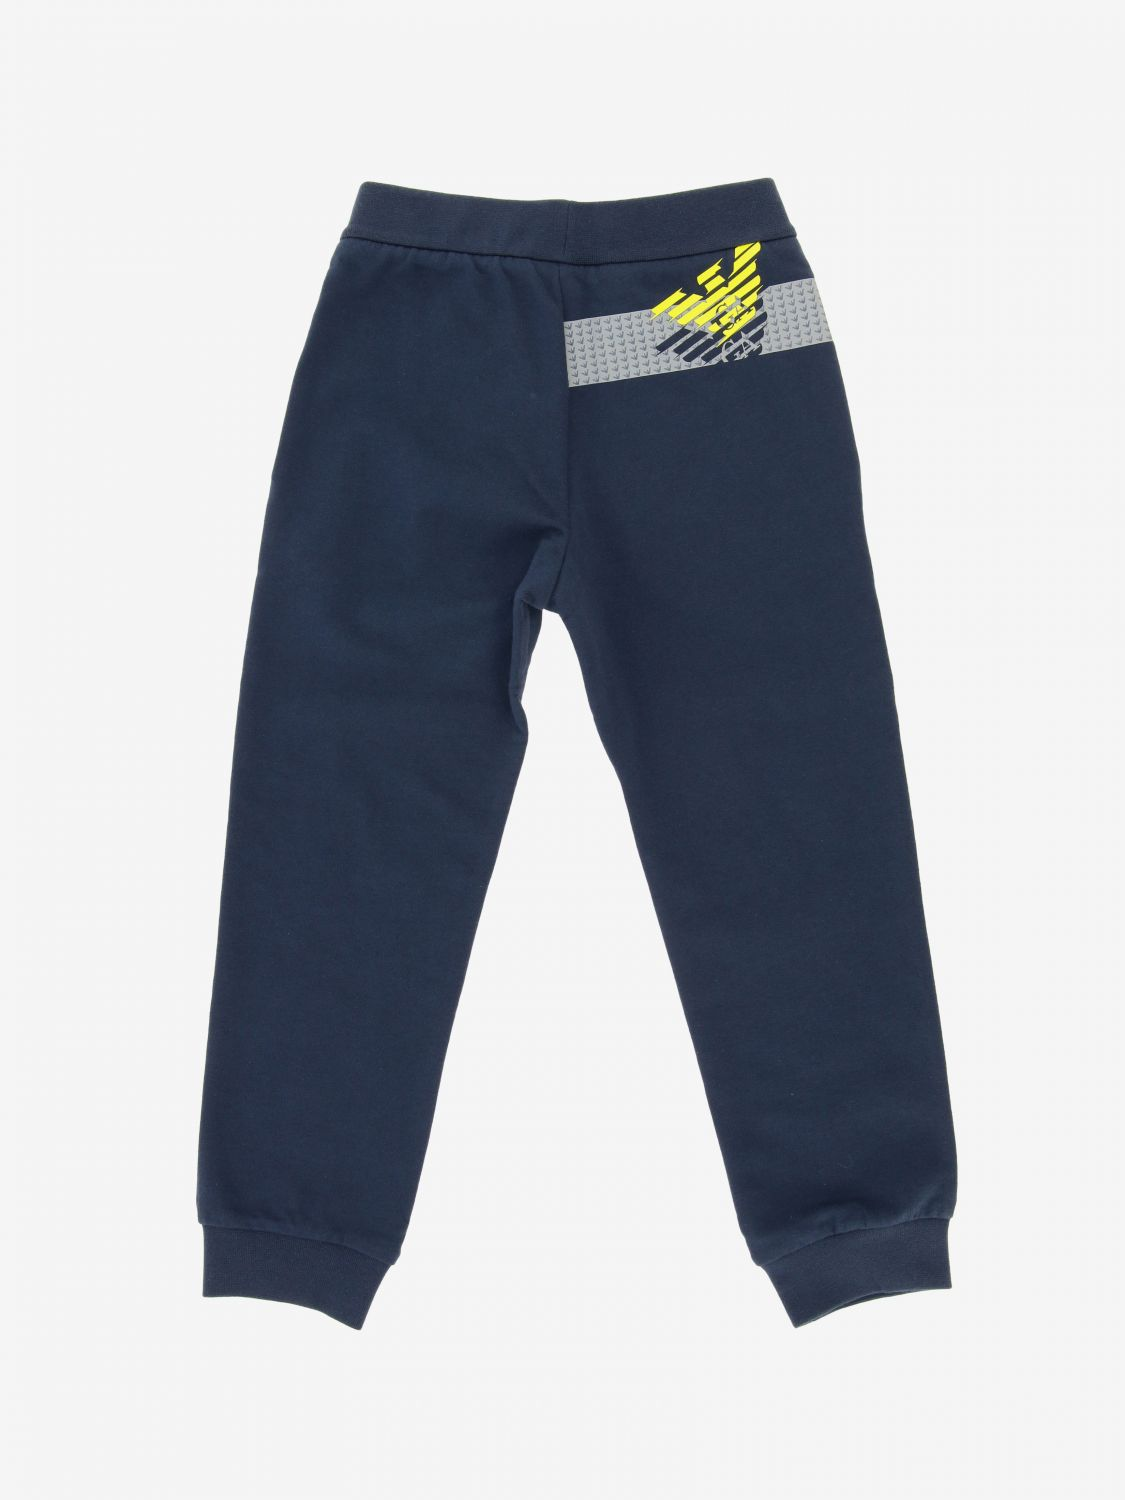 EA7 jogging trousers with logo blue 2